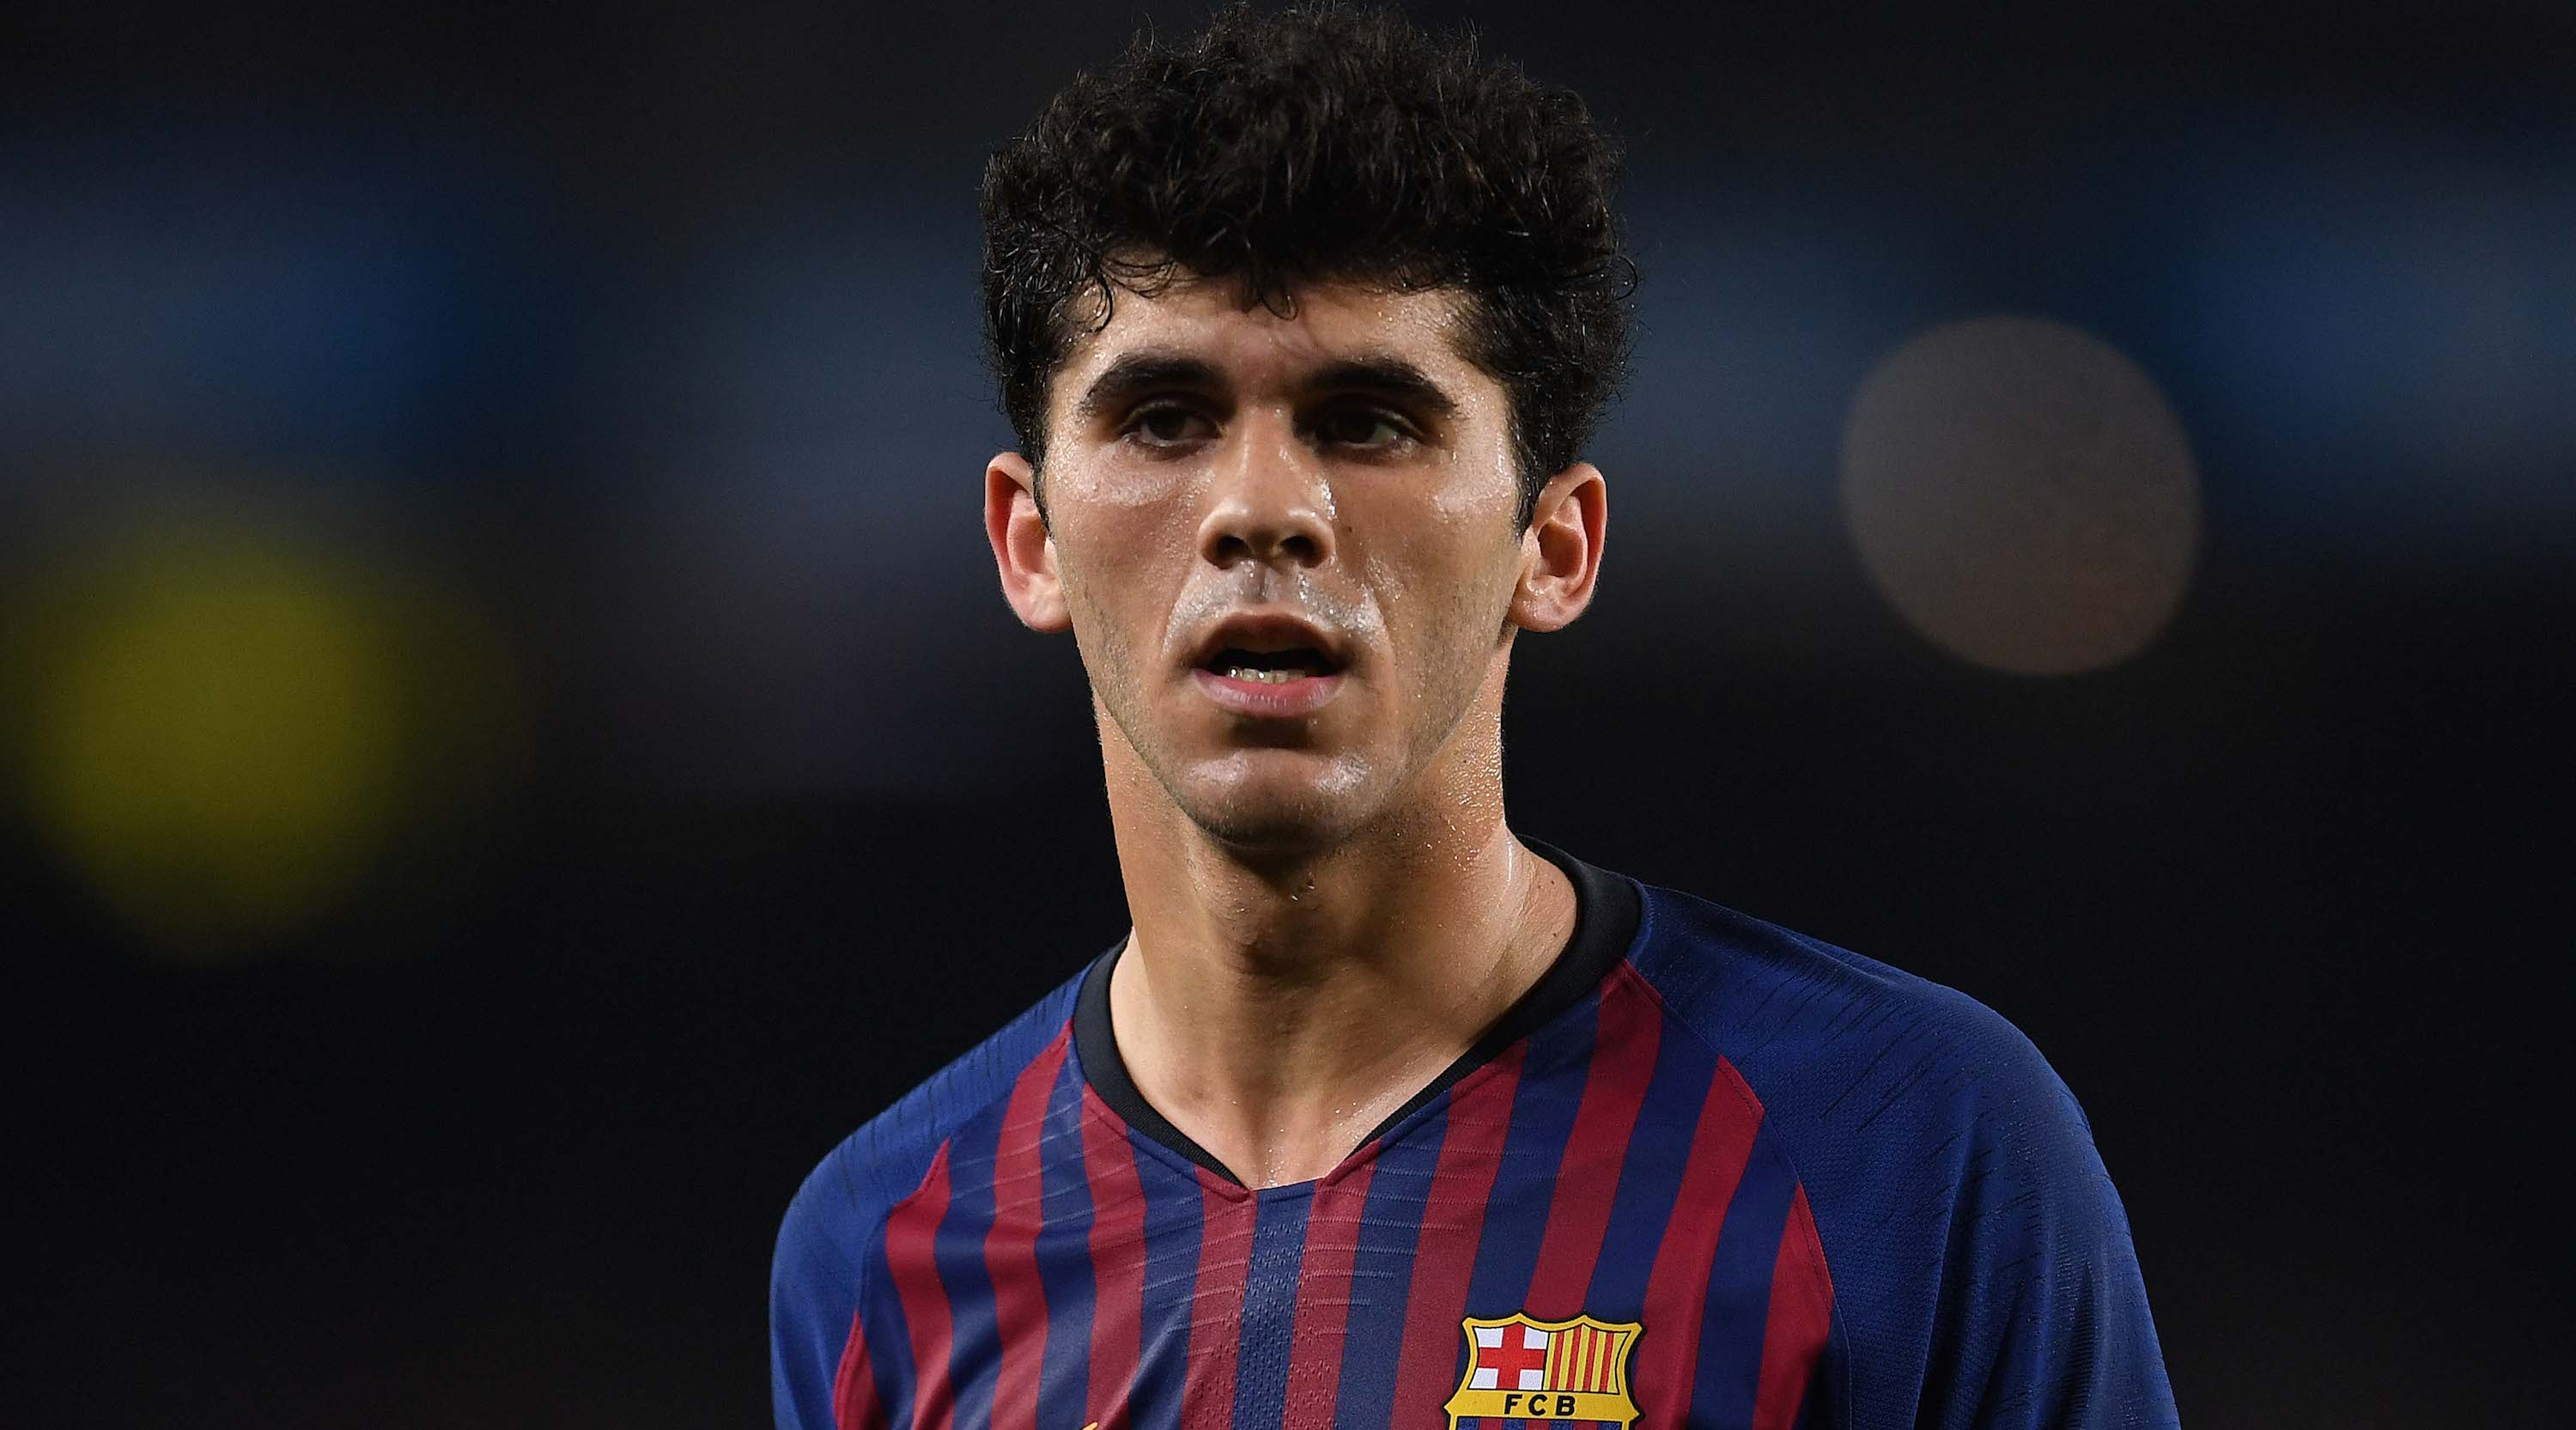 BARCELONA, SPAIN - FEBRUARY 16: Carles Alena of FC Barcelona looks on during the La Liga match between FC Barcelona and Real Valladolid CF at Camp Nou on February 16, 2019 in Barcelona, Spain. (Photo by David Ramos/Getty Images)